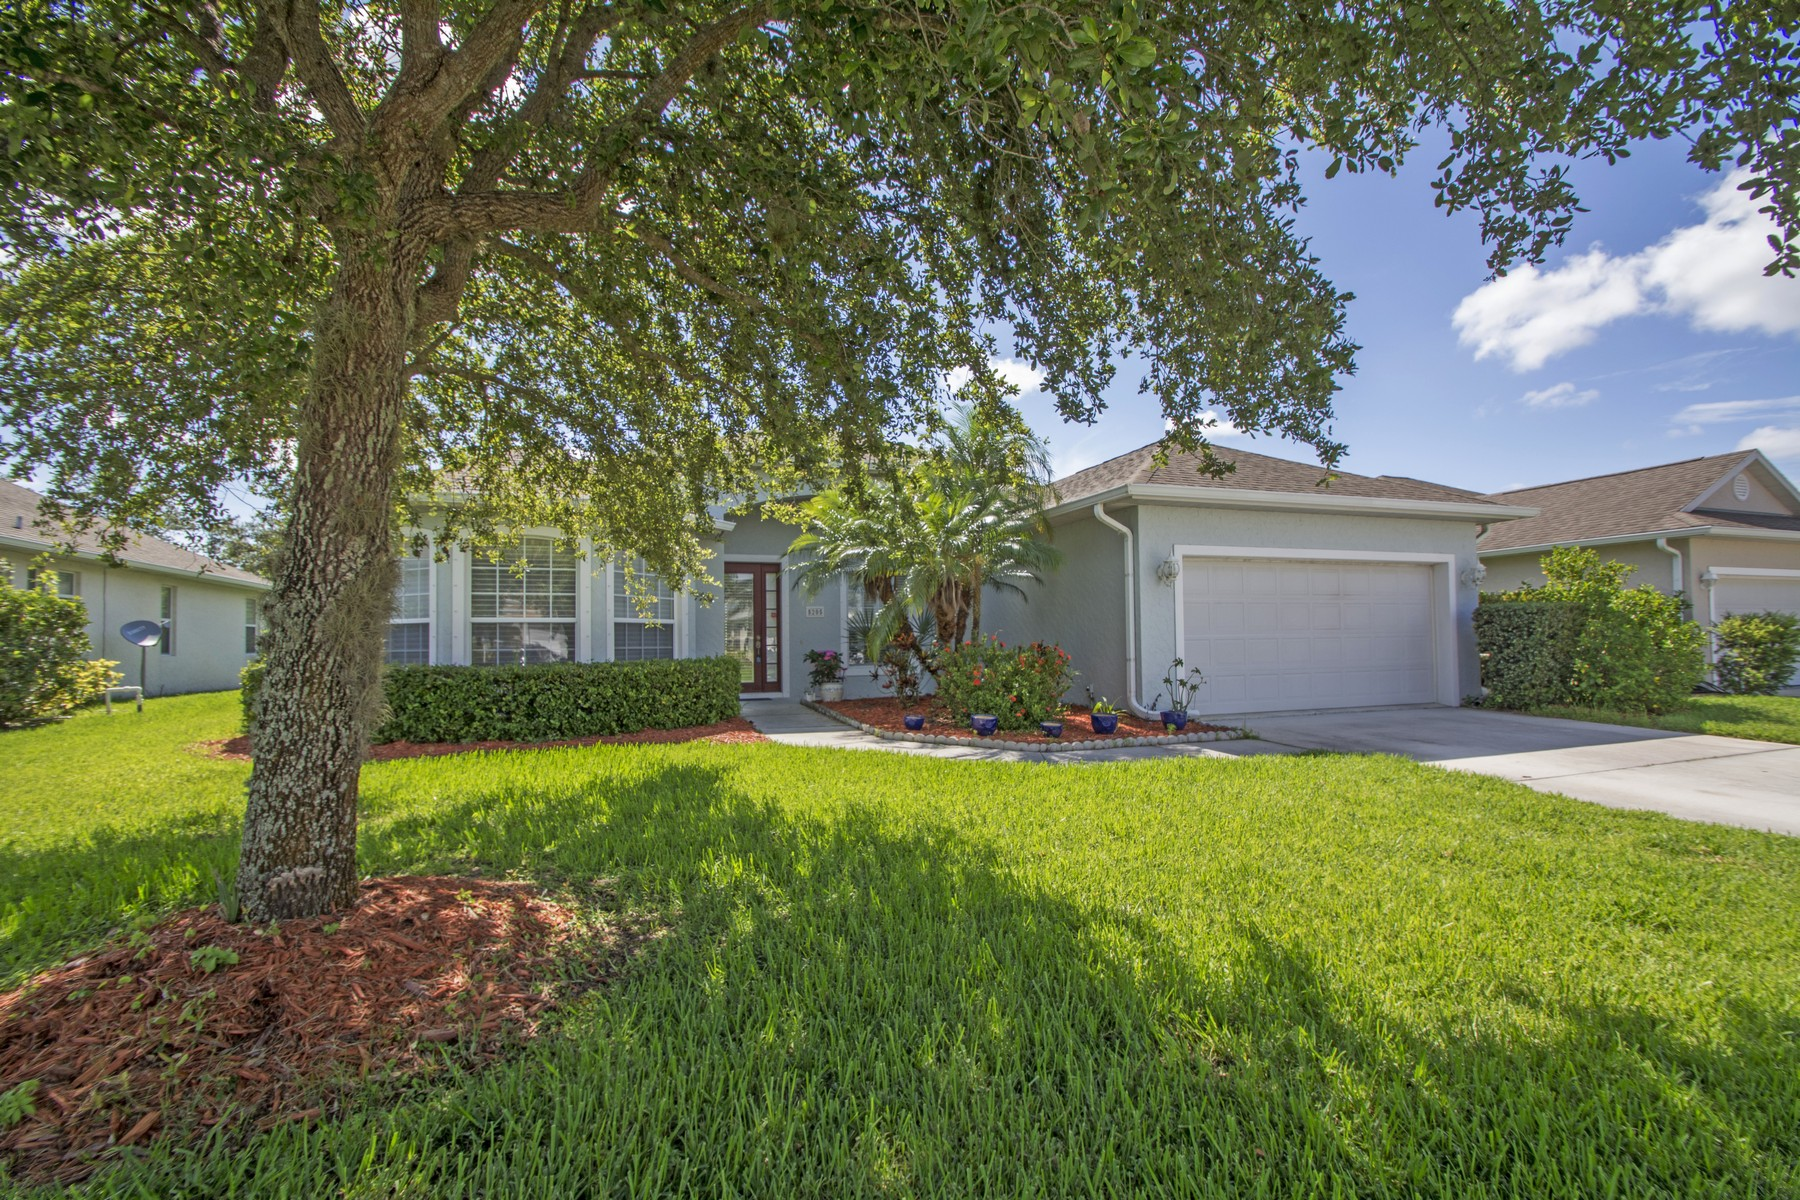 Single Family Home for Sale at Beautifully maintained four bedroom home in Hammock Lakes 5205 1st Square SW Vero Beach, Florida 32968 United States